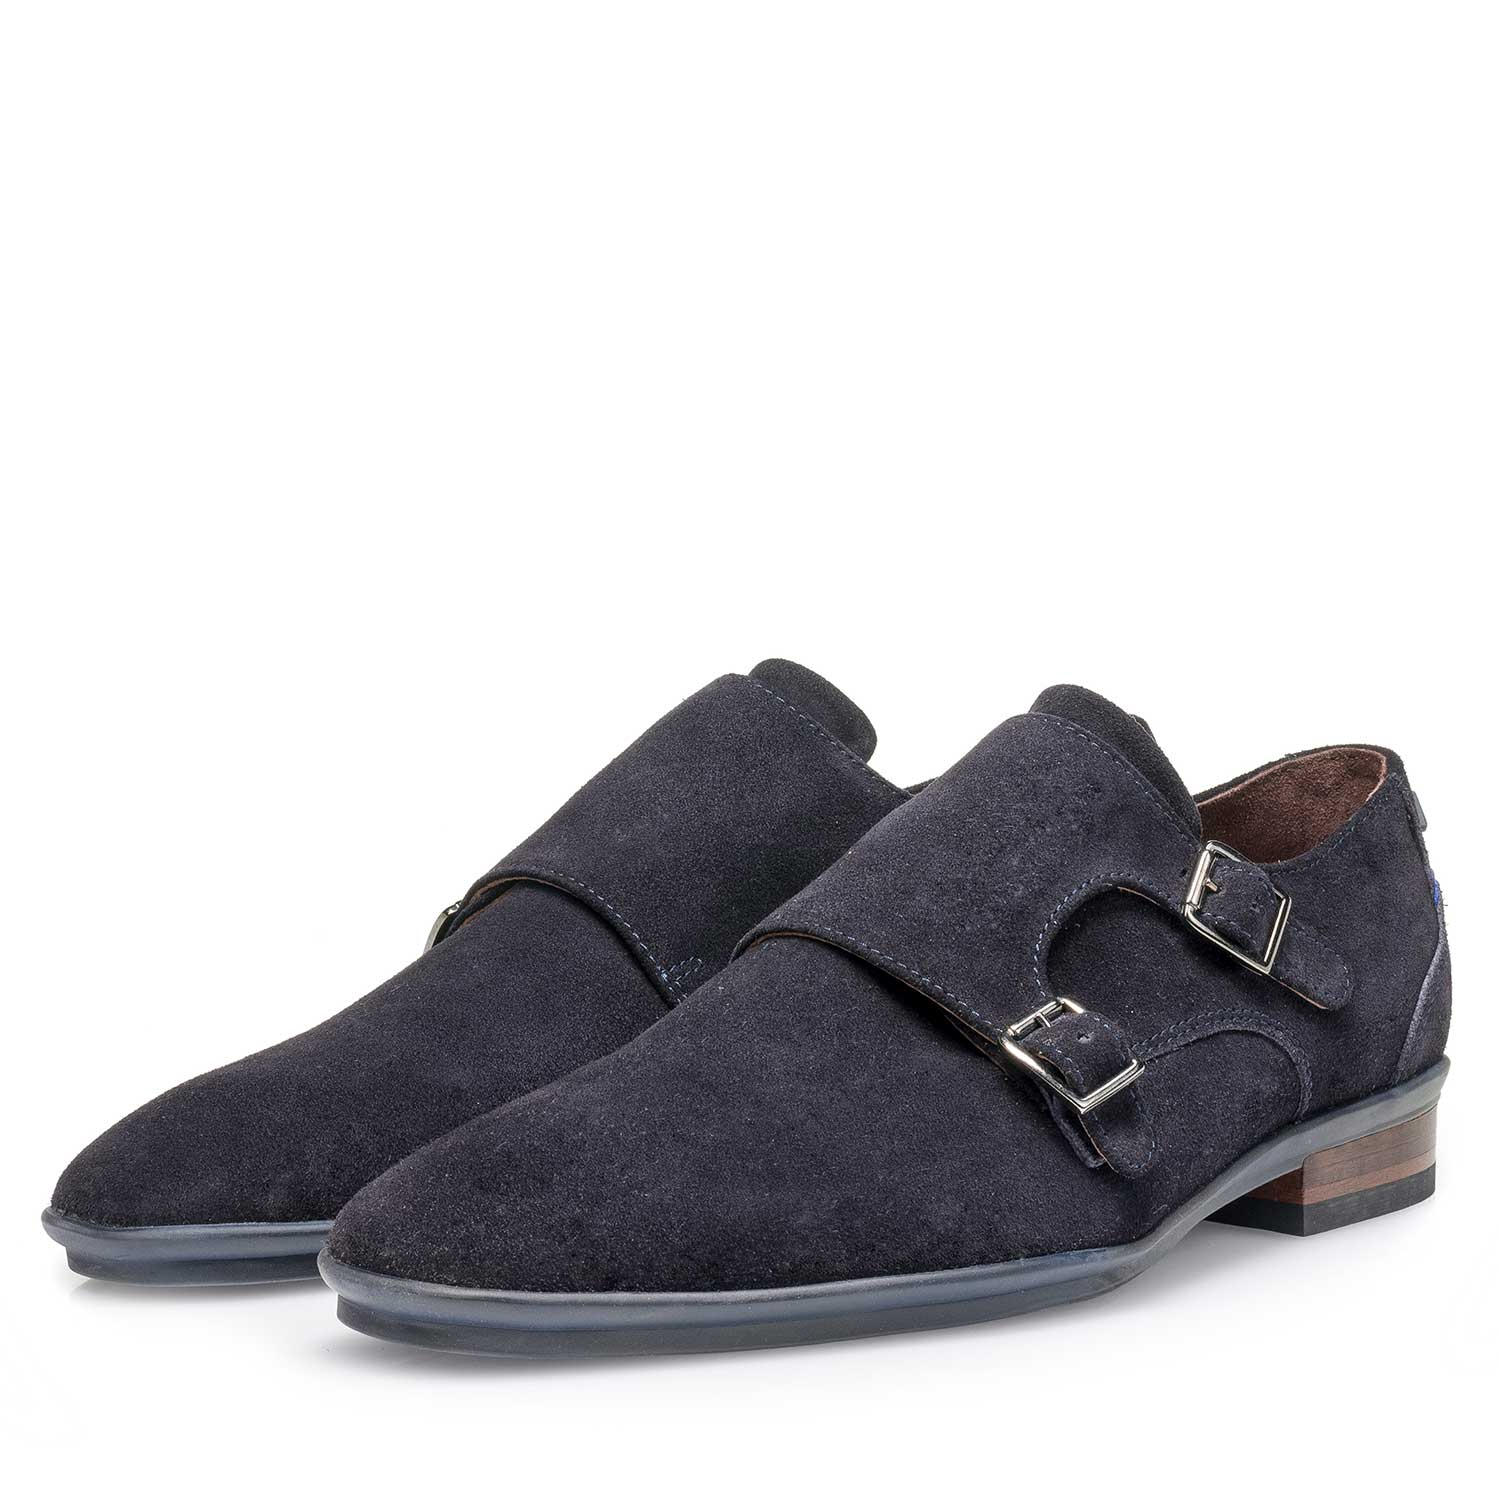 12132/14 - Blue calf suede leather double buckle monk strap